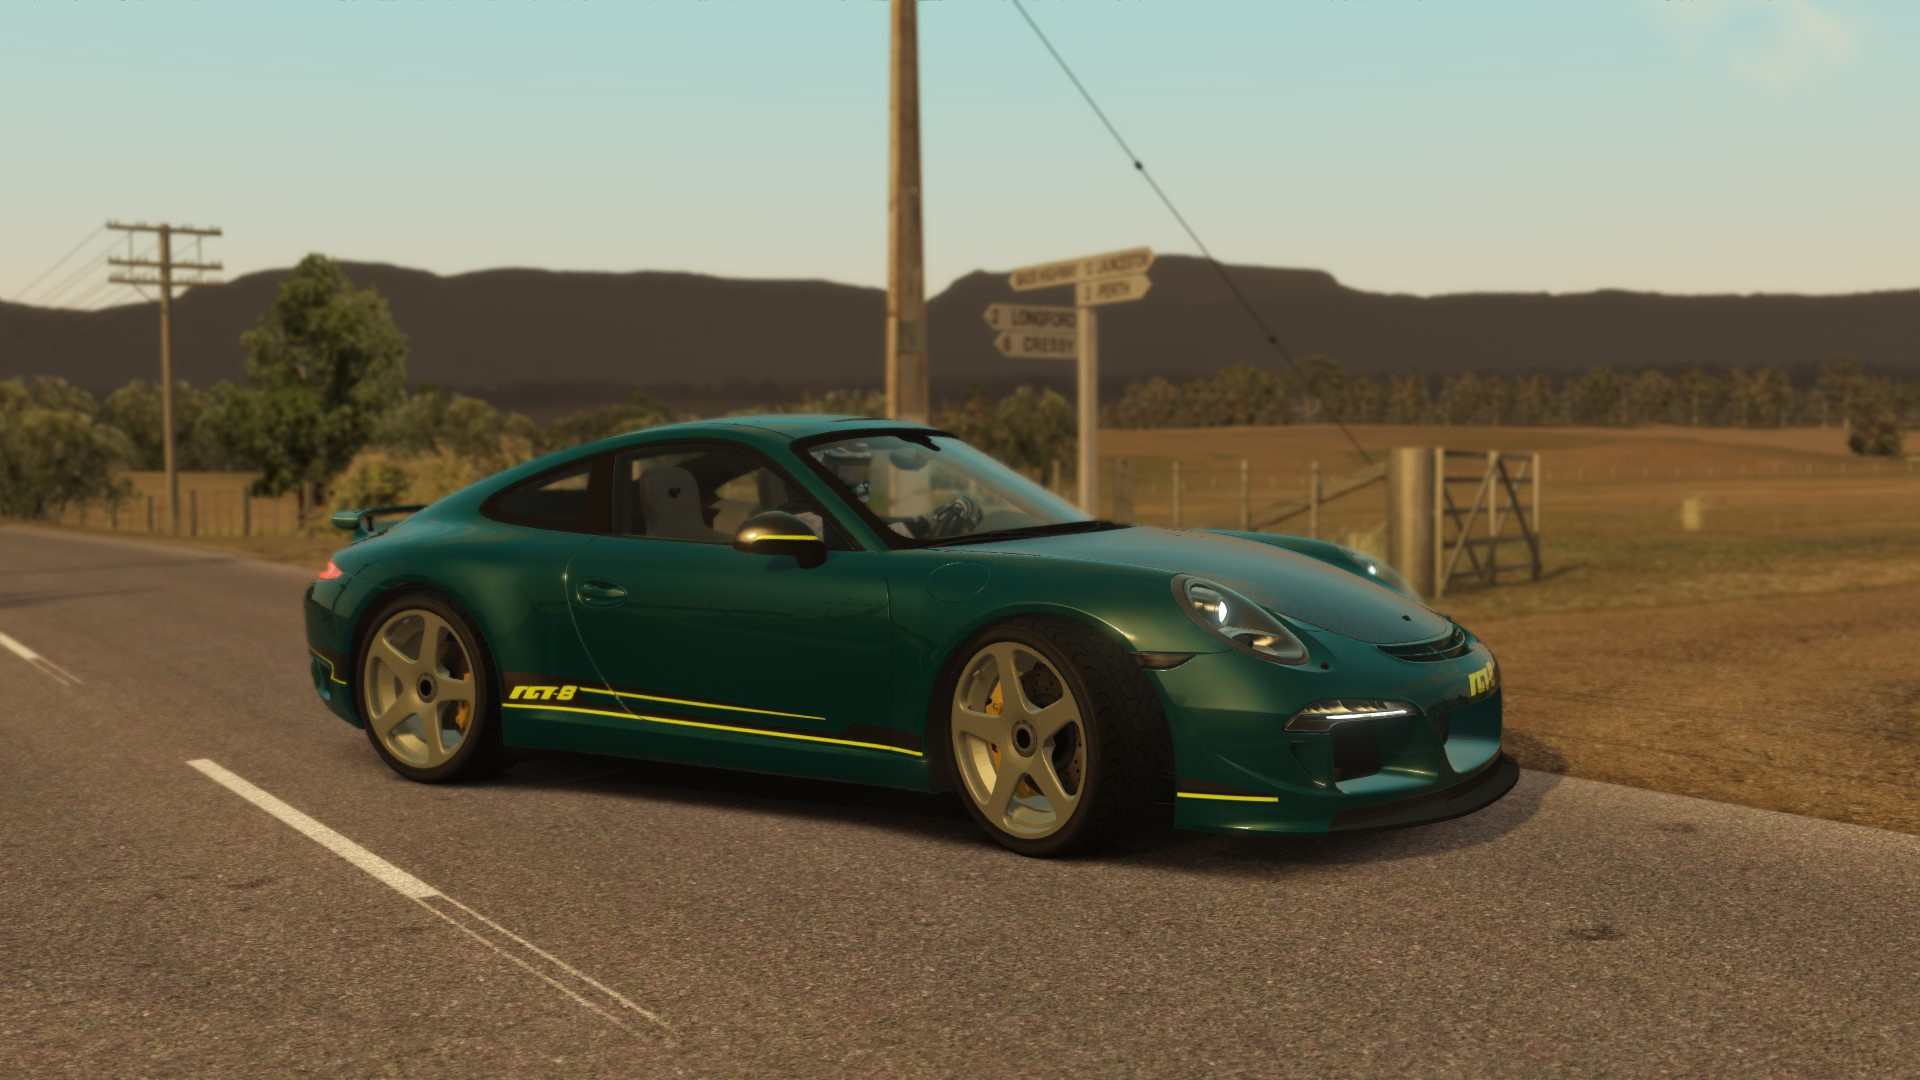 Assetto Corsa 1.5 RUF 991 RGT-8 at Longford 0010.jpg